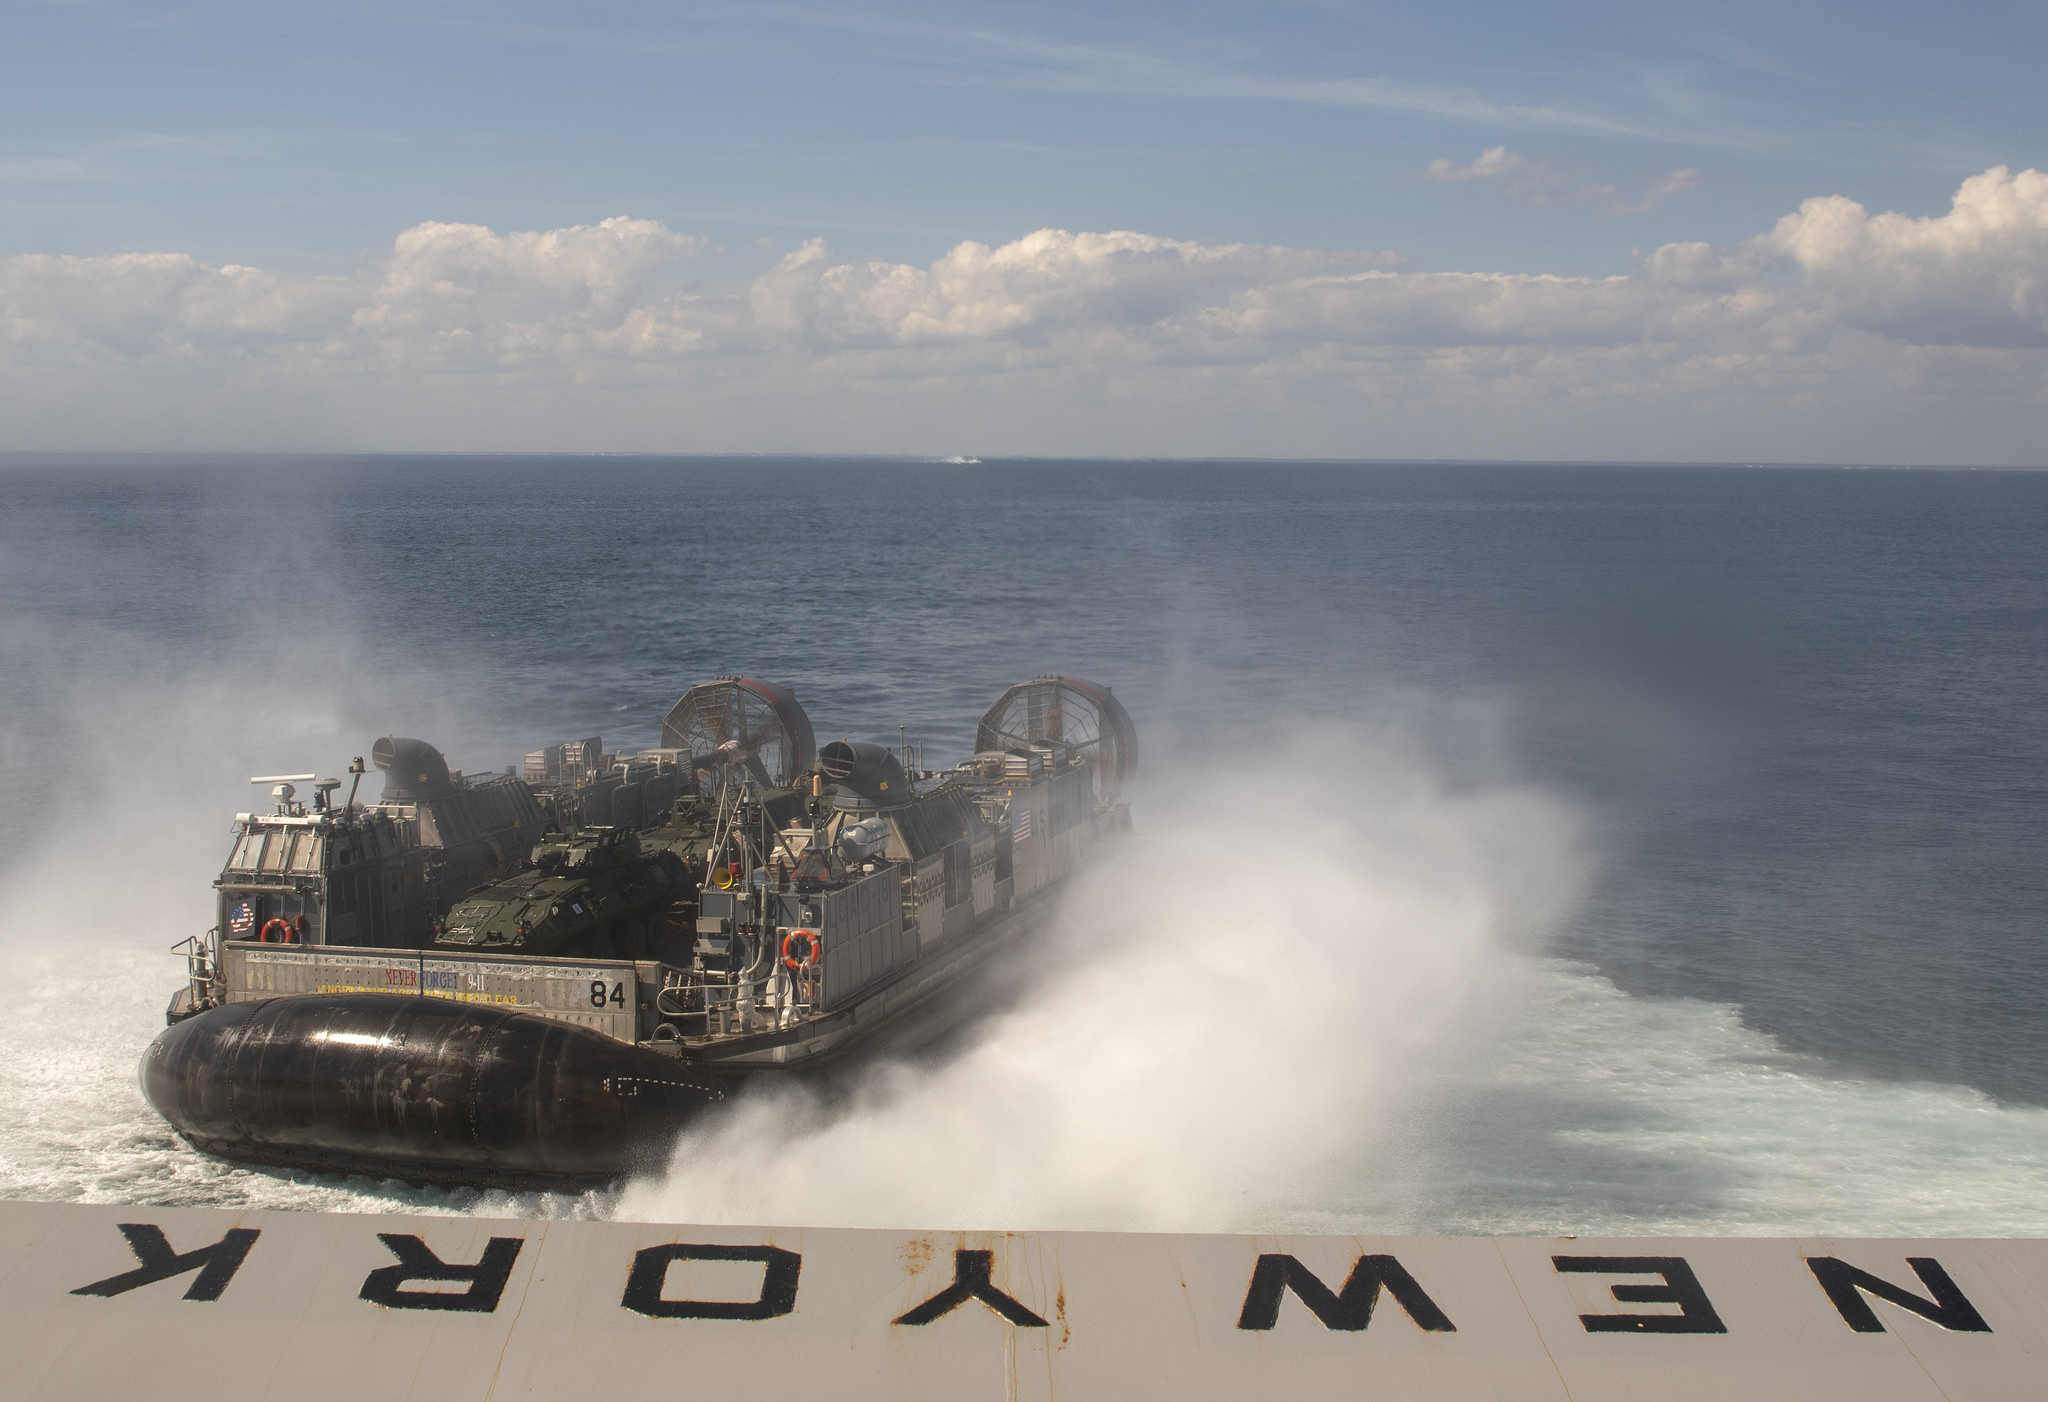 A landing craft, air cushion assigned to Assault Craft Unit (ACU) 4 leaves the well deck of the San Antonio-class amphibious transport dock ship USS New York (LPD 21), Oct. 3, 2018. New York departs Mayport, Fla., to participate in Trident Juncture 2018, a NATO-led exercise designed to certify NATO response forces and develop interoperability among participating NATO and partner nations. (MC2 Lyle Wilkie/Navy)